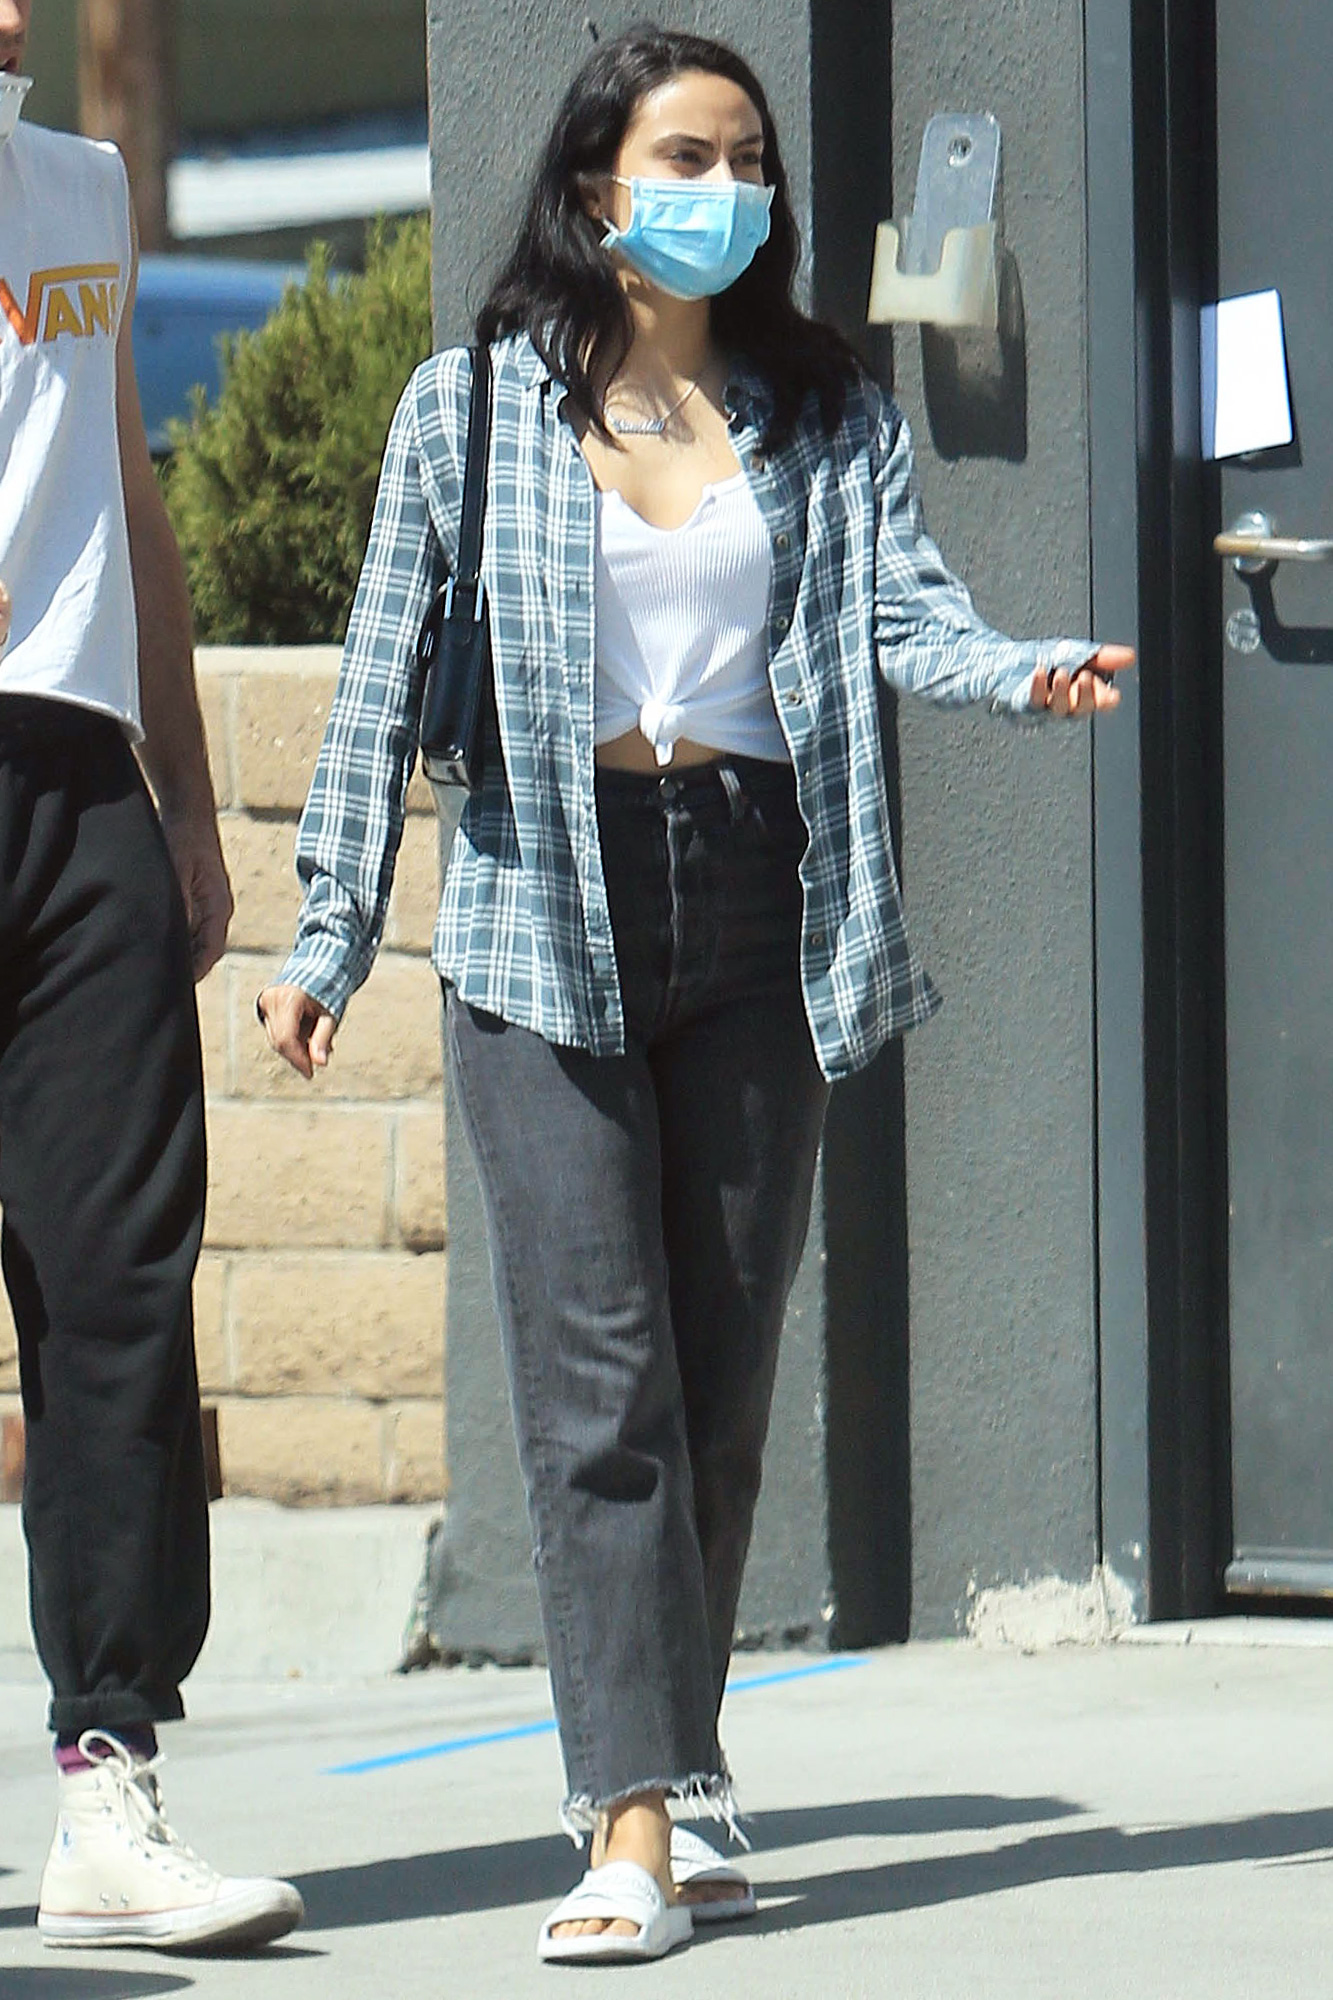 Camila Mendes is seen on May 15, 2020 in Los Angeles, CA